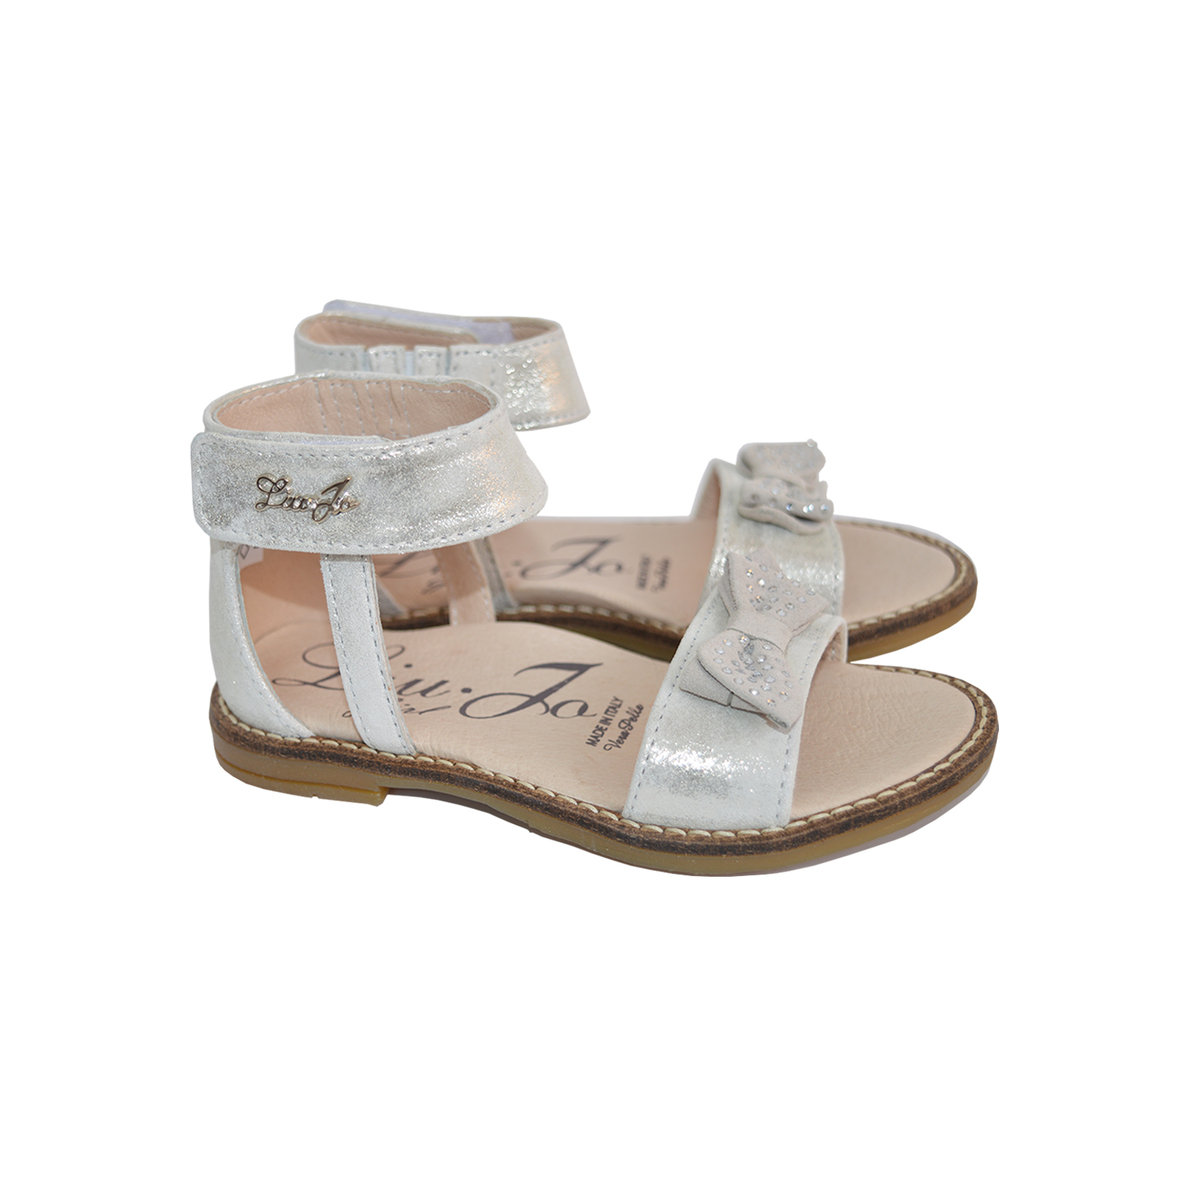 Baby Girls / Toddlers Sandals with